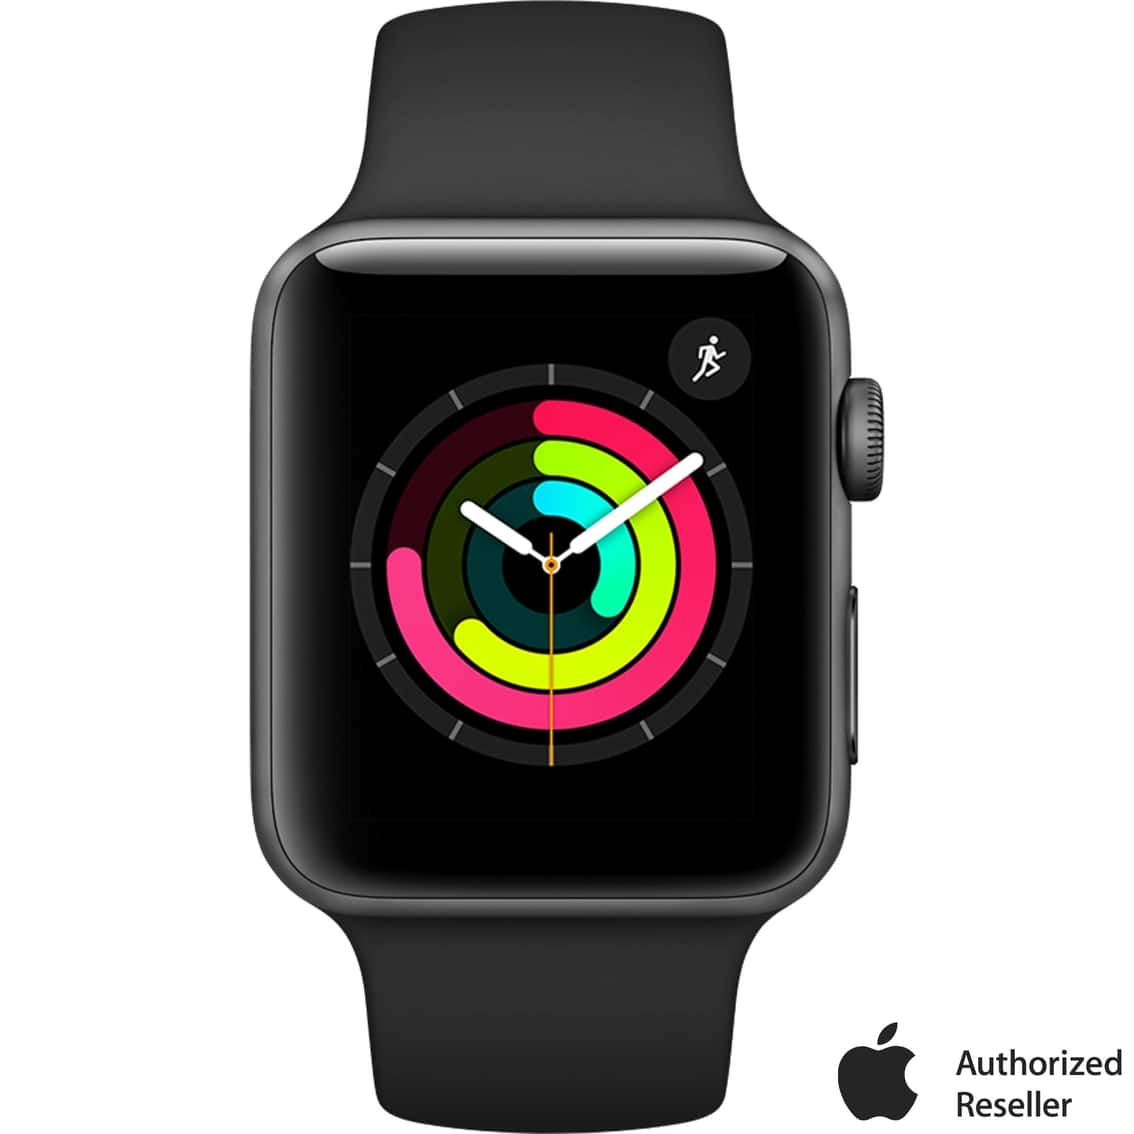 AAFES/Military Apple Watch Series 3 GPS Space Gray Aluminum Case with Black Sport Band $208